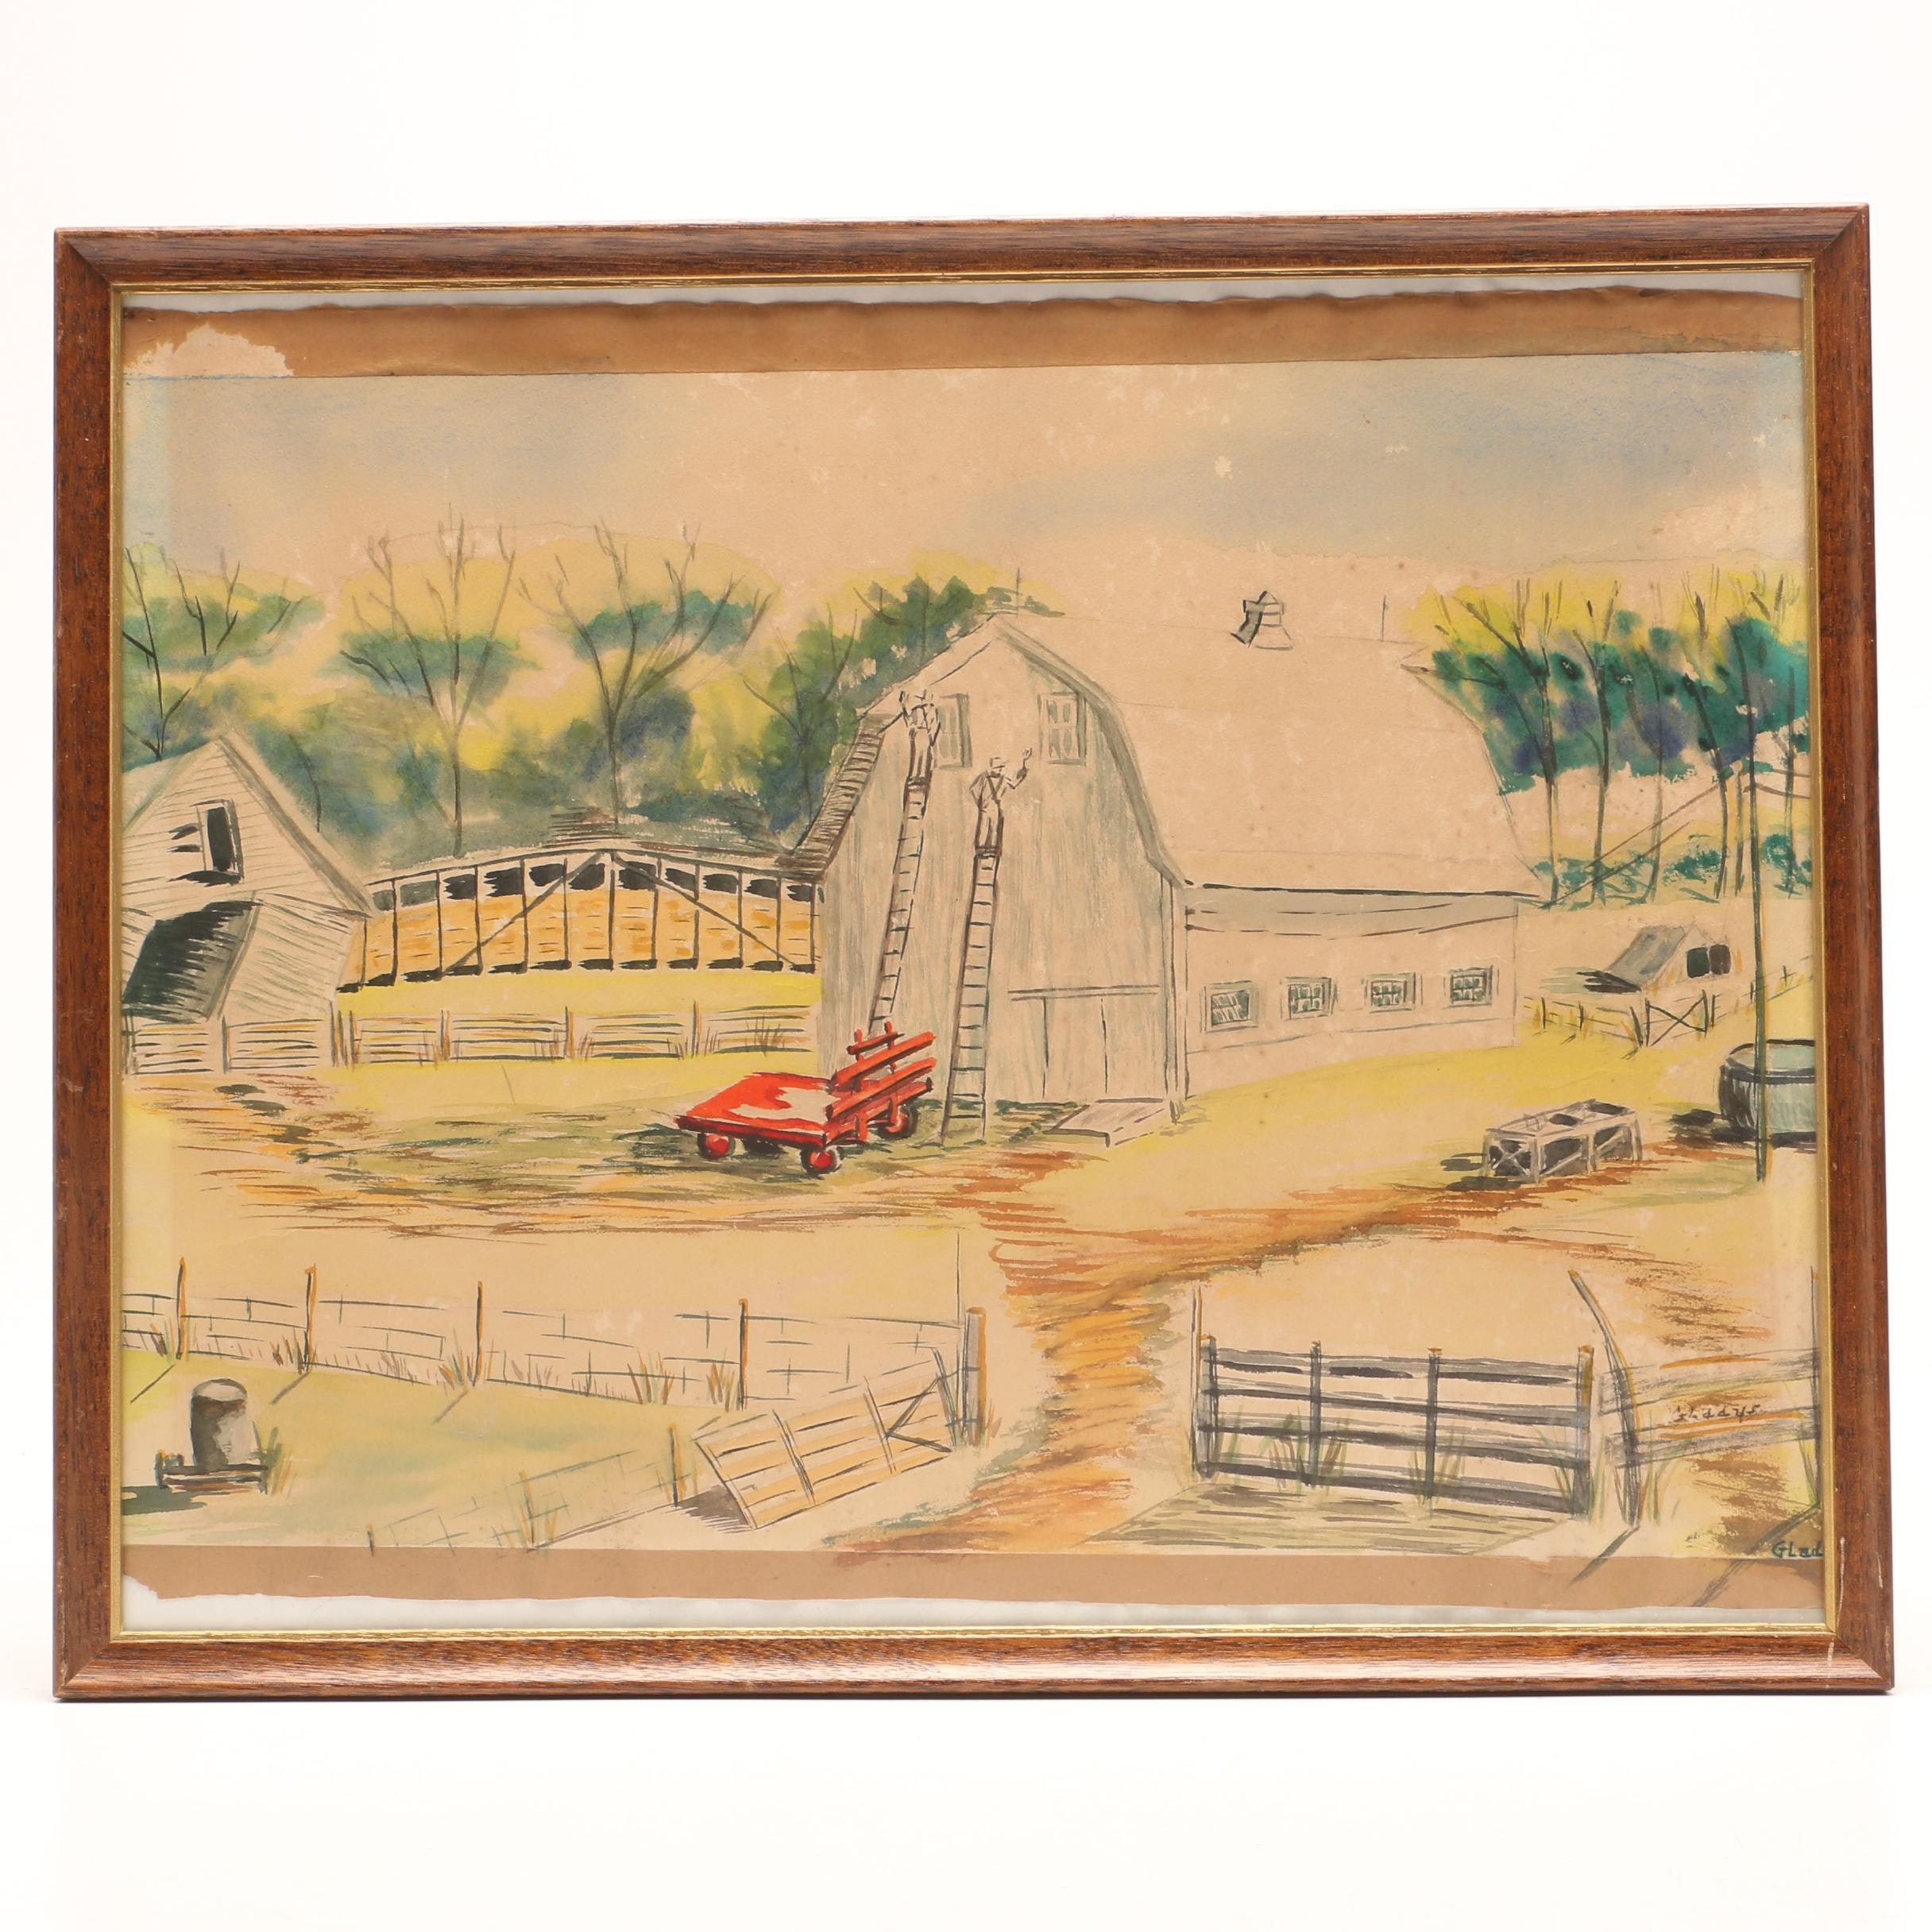 Gladdys Watercolor Painting of Farm Scene